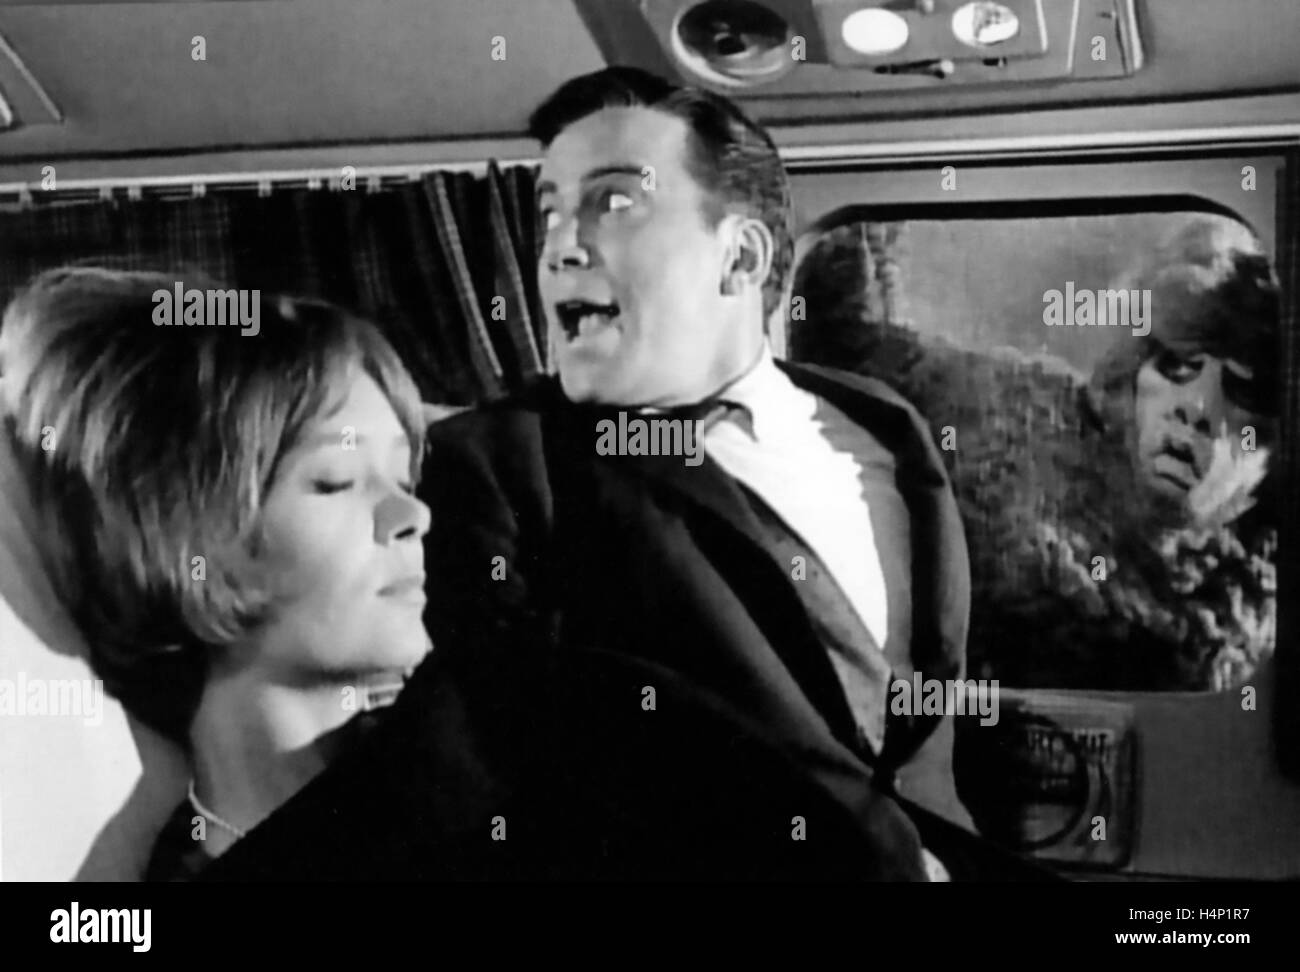 THE TWILIGHT ZONE CBS TV series 1959-1964. William Shatner in the 1959 episode 'Nightmare at 20,000 Feet' - Stock Image